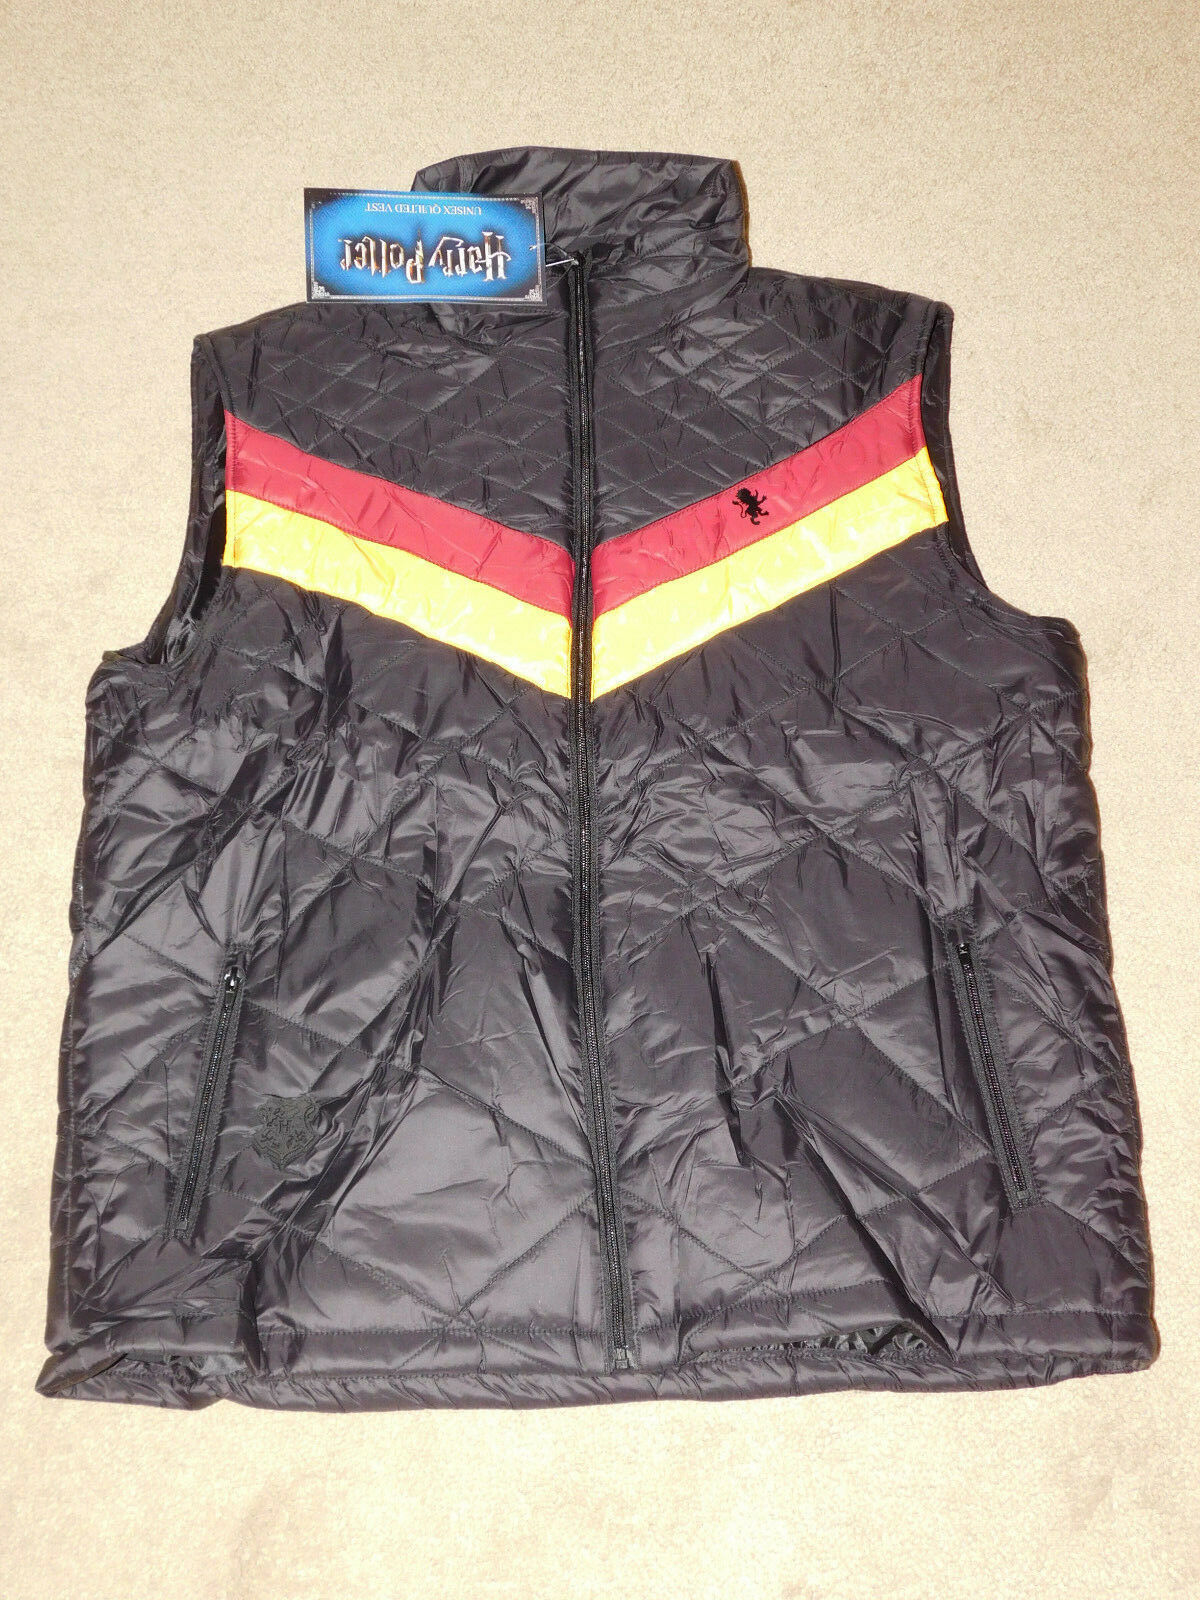 ADULT HARRY POTTER GRYFFINDOR QUILTED PUFFER VEST  - Size 3XL (New With Tags)